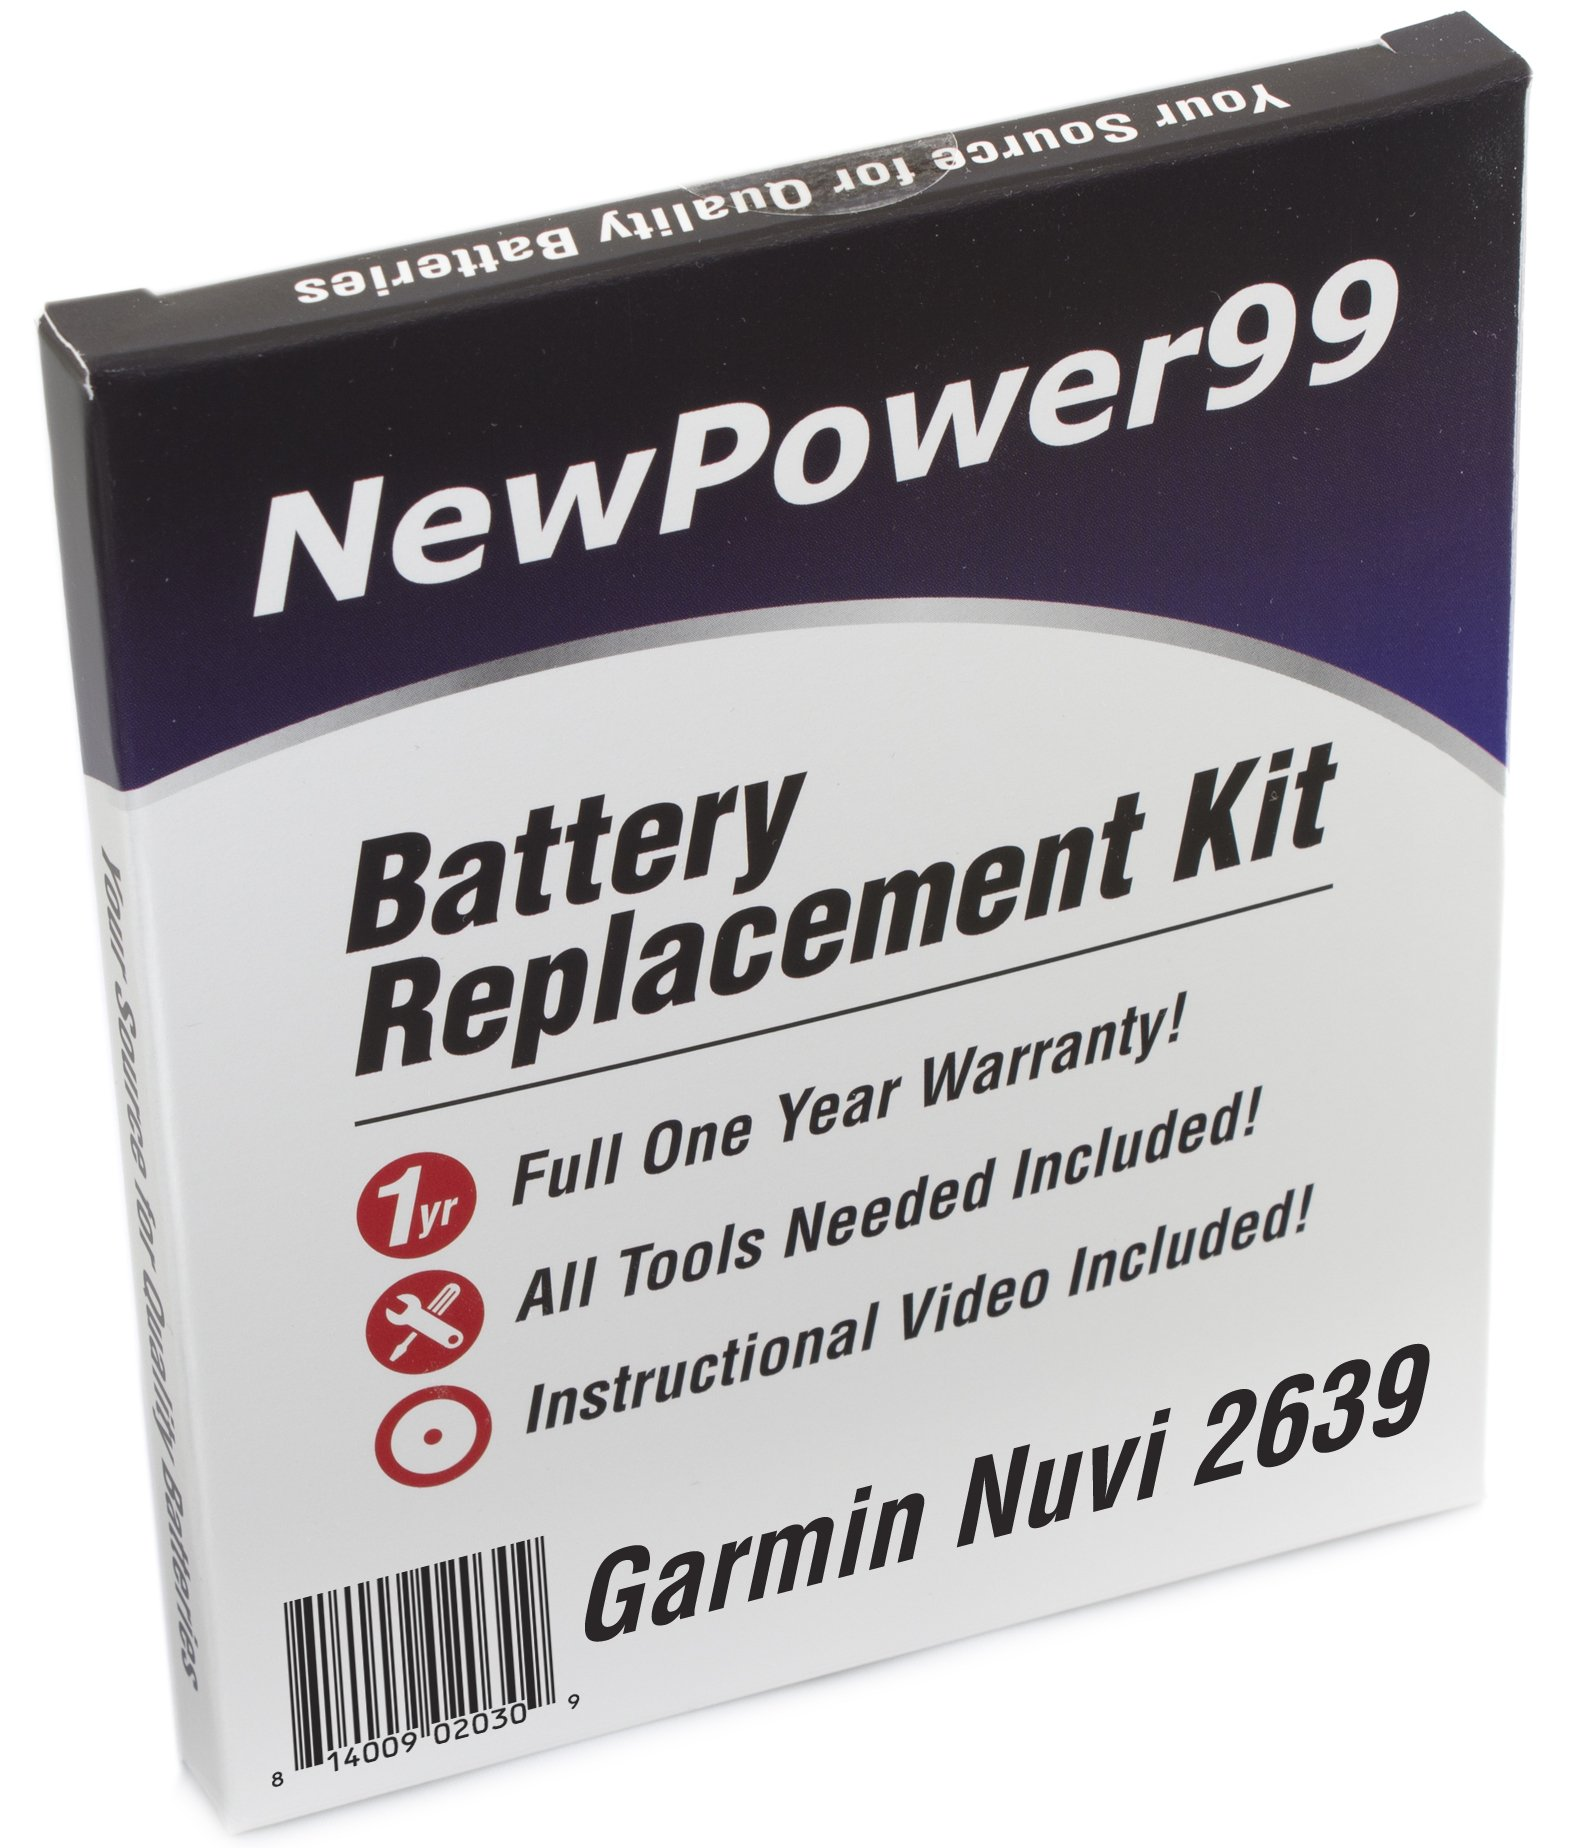 NewPower99 Battery Replacement Kit for Garmin Nuvi 2639 with Installation Video, Tools, and Extended Life Battery.